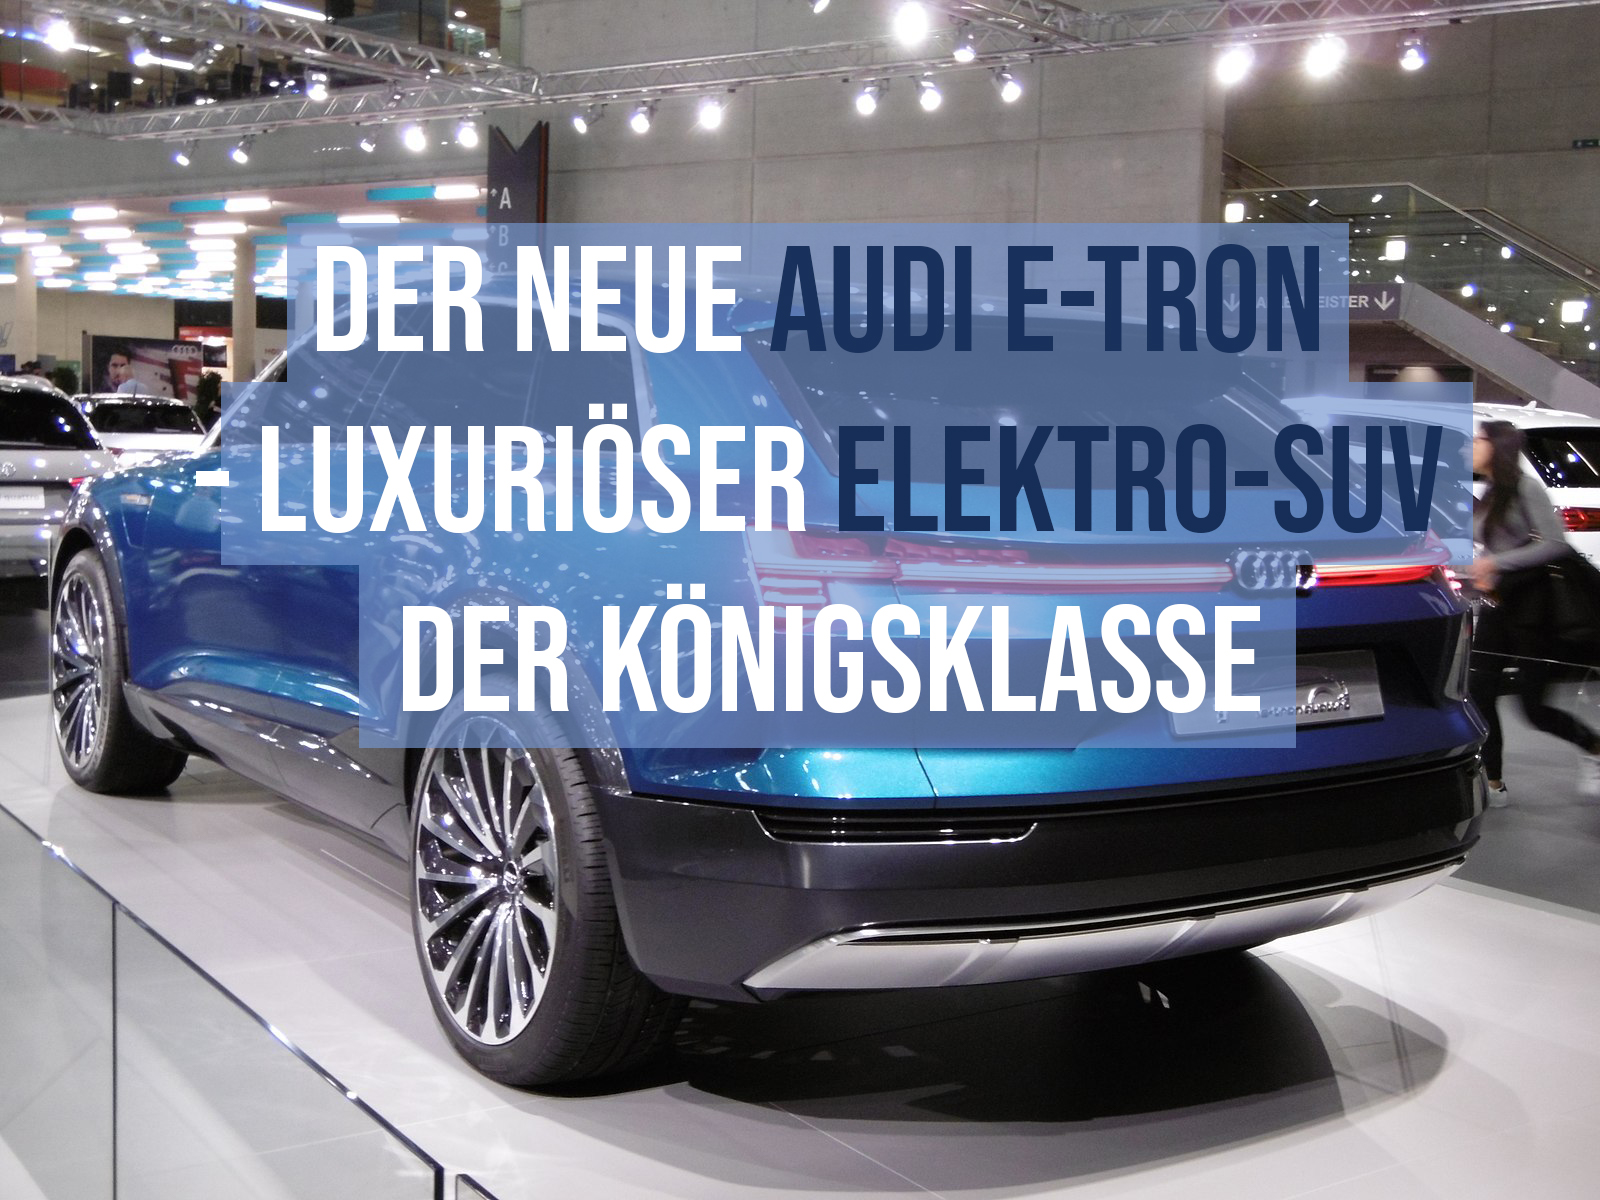 der neue audi e tron luxuri ser elektro suv der k nigsklasse. Black Bedroom Furniture Sets. Home Design Ideas